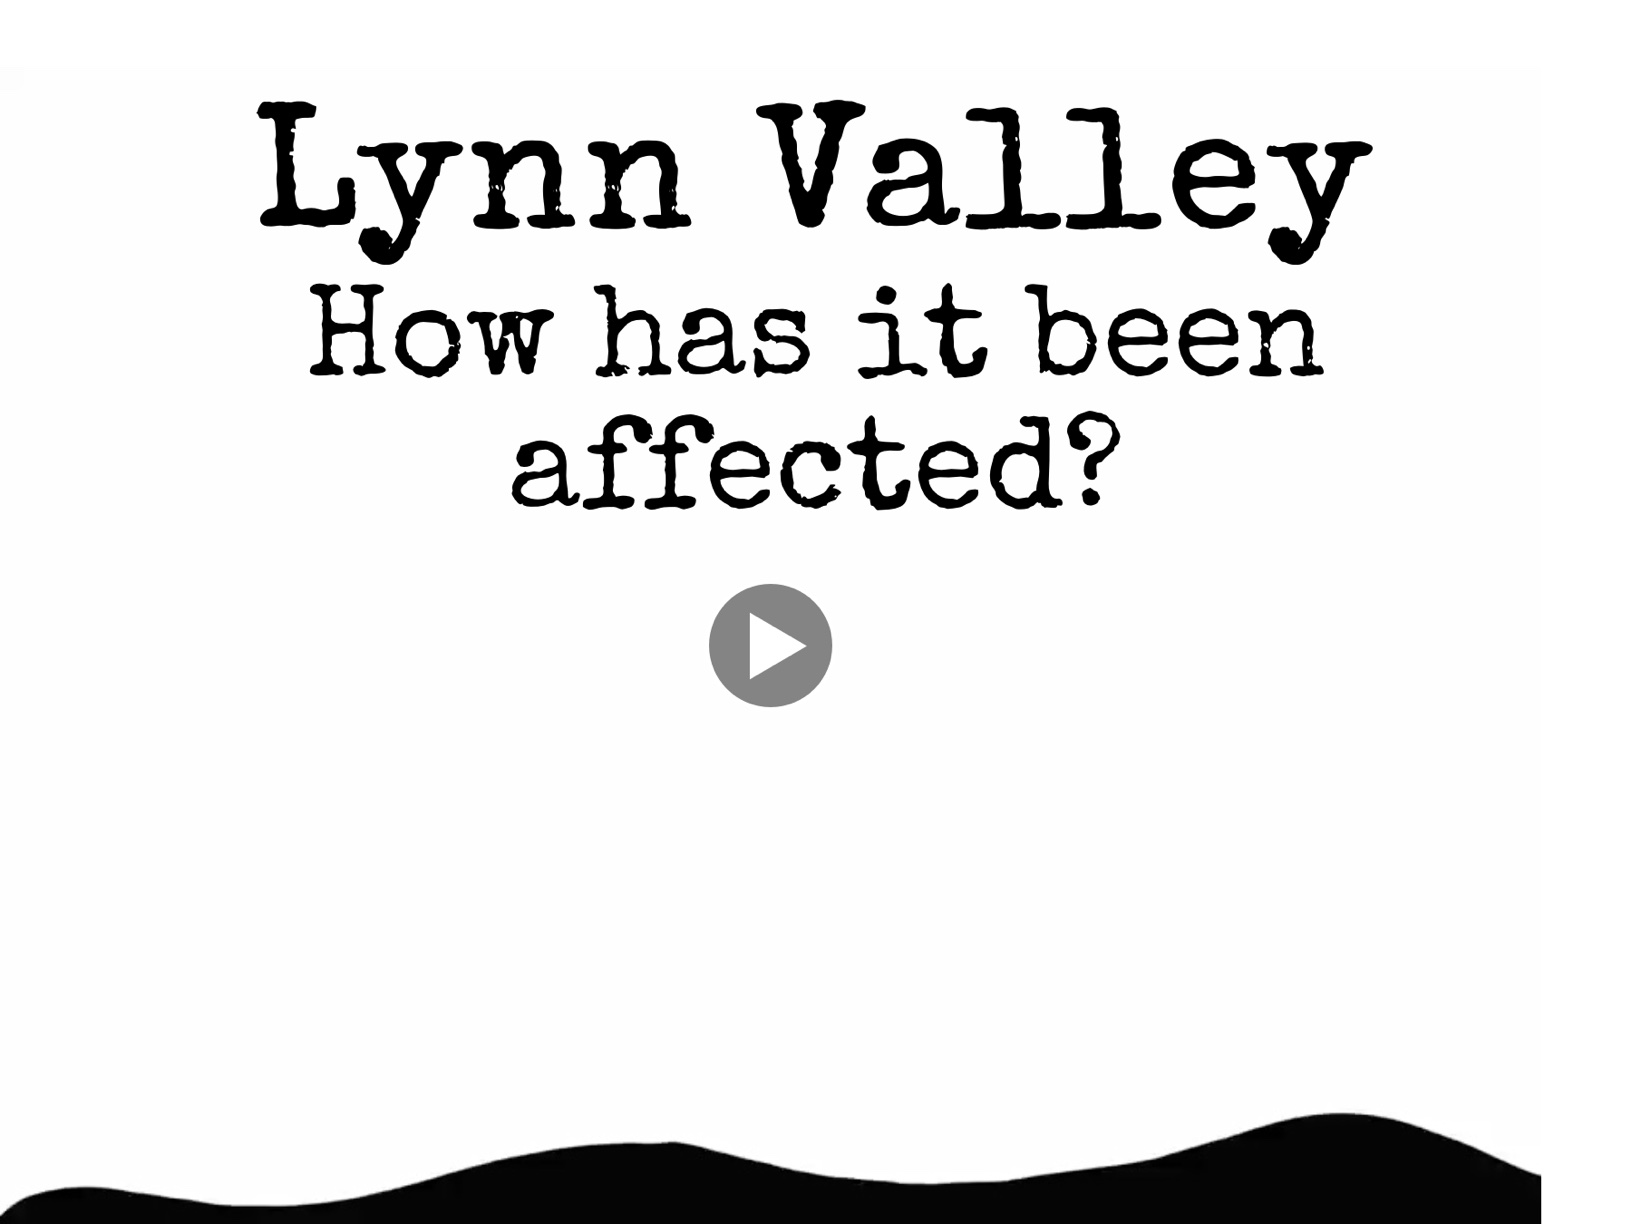 Lynn Valley: How Has It Been Affected?